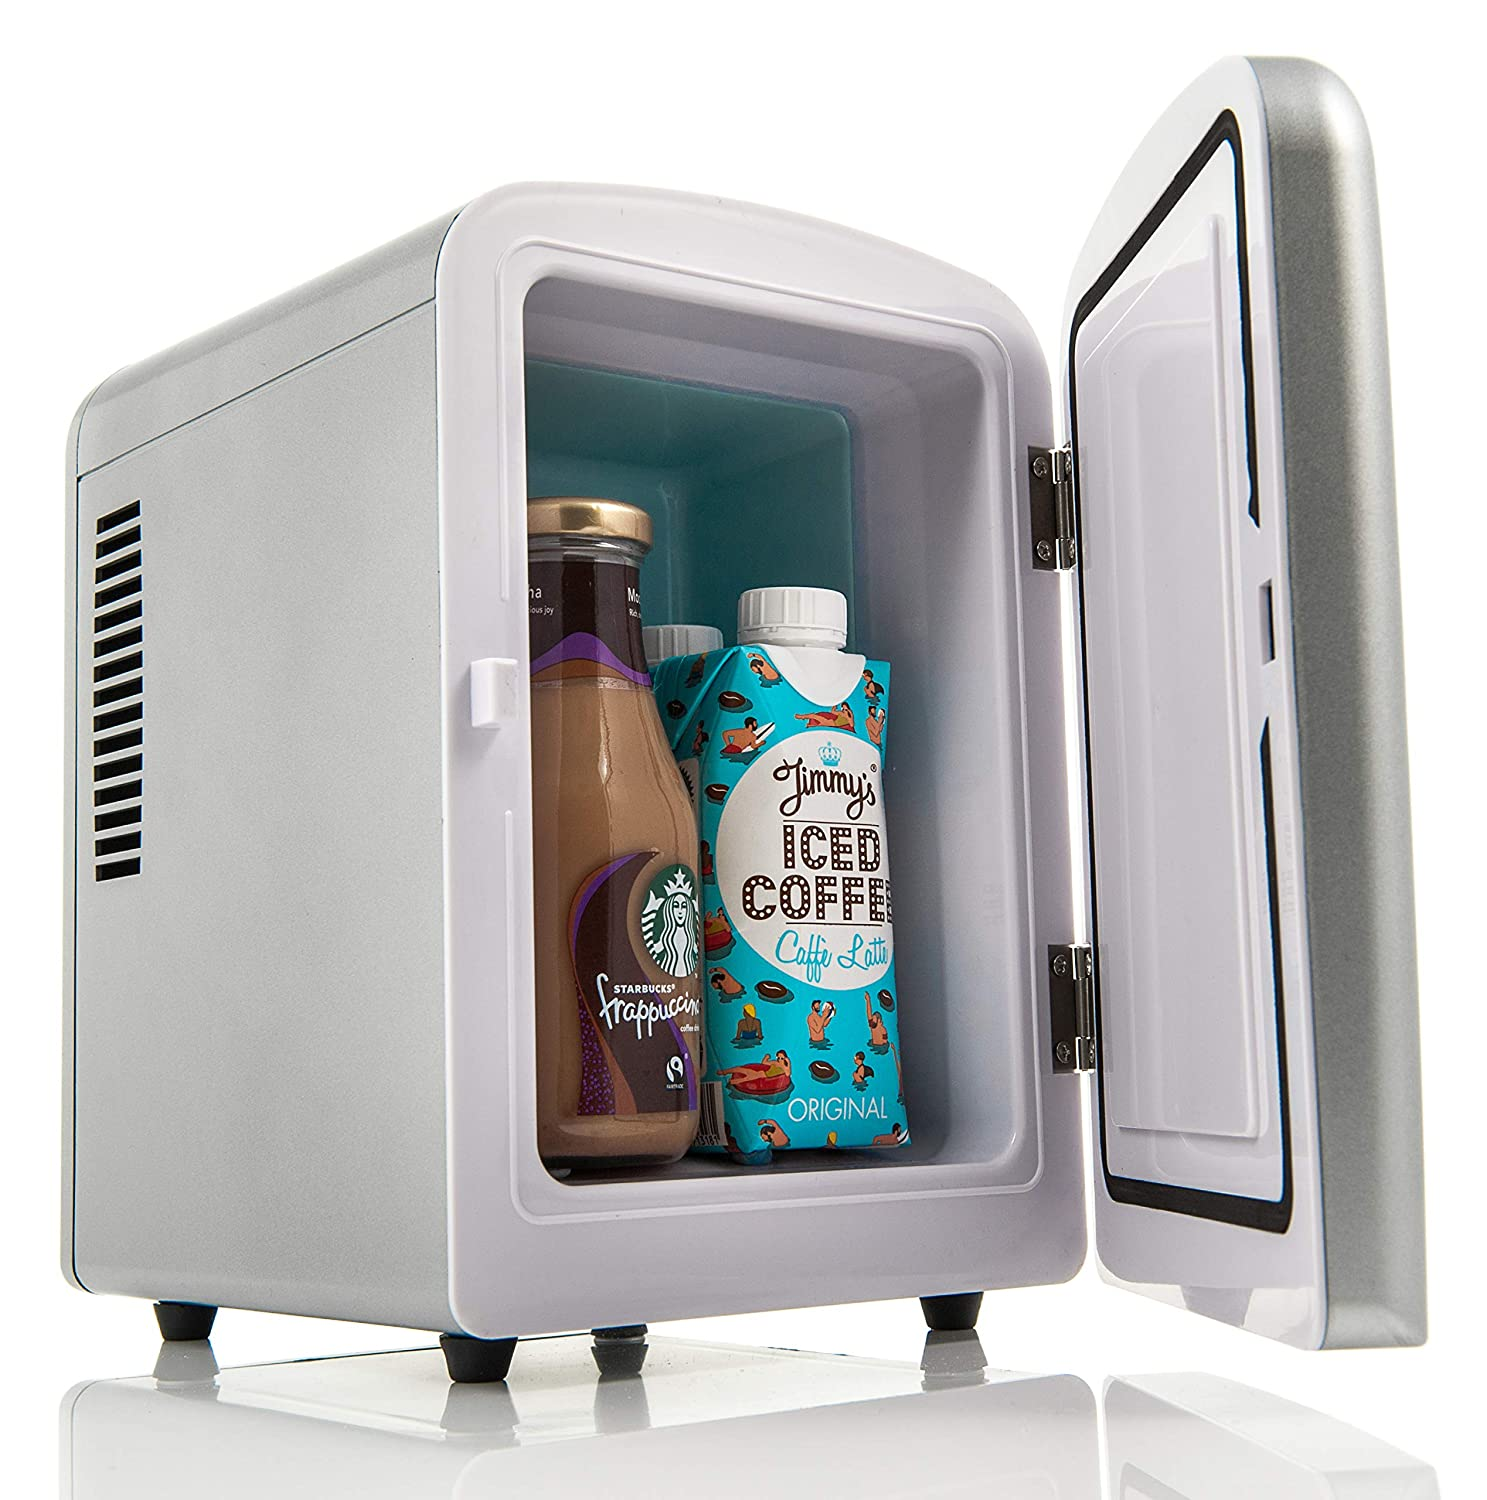 Fineway Portable 4L Mini Fridge Cooler Chiller and Warmer -Ideal for Home Bedrooms Offices Camping Car Black Comes with DC 12V power cord Can Drinks